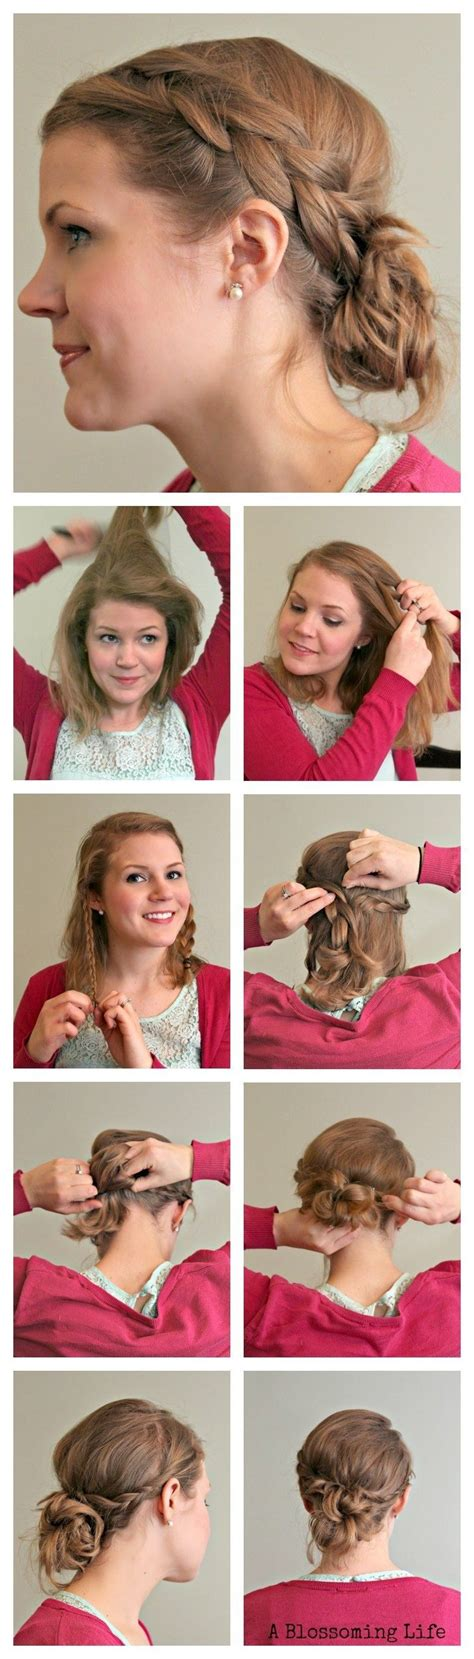 hairstyles and braids tutorial 10 simple yet stylish updo hairstyle tutorials for all